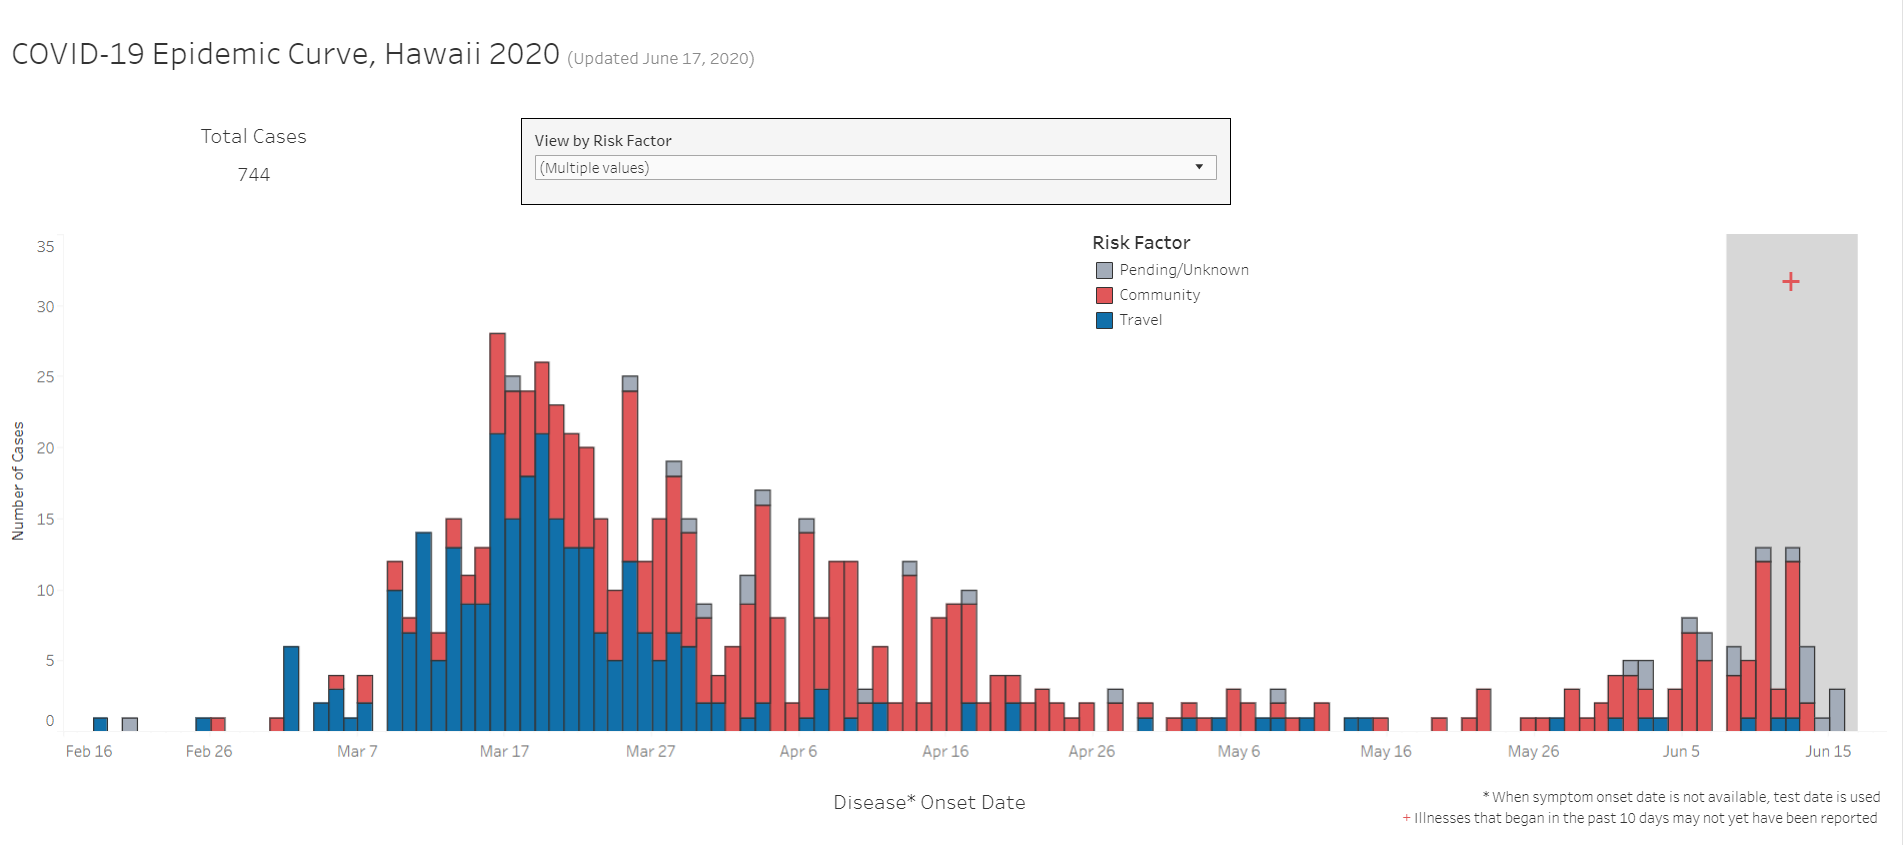 COVID-19 Epidemic Curve of Cases Updated June 17, 2020